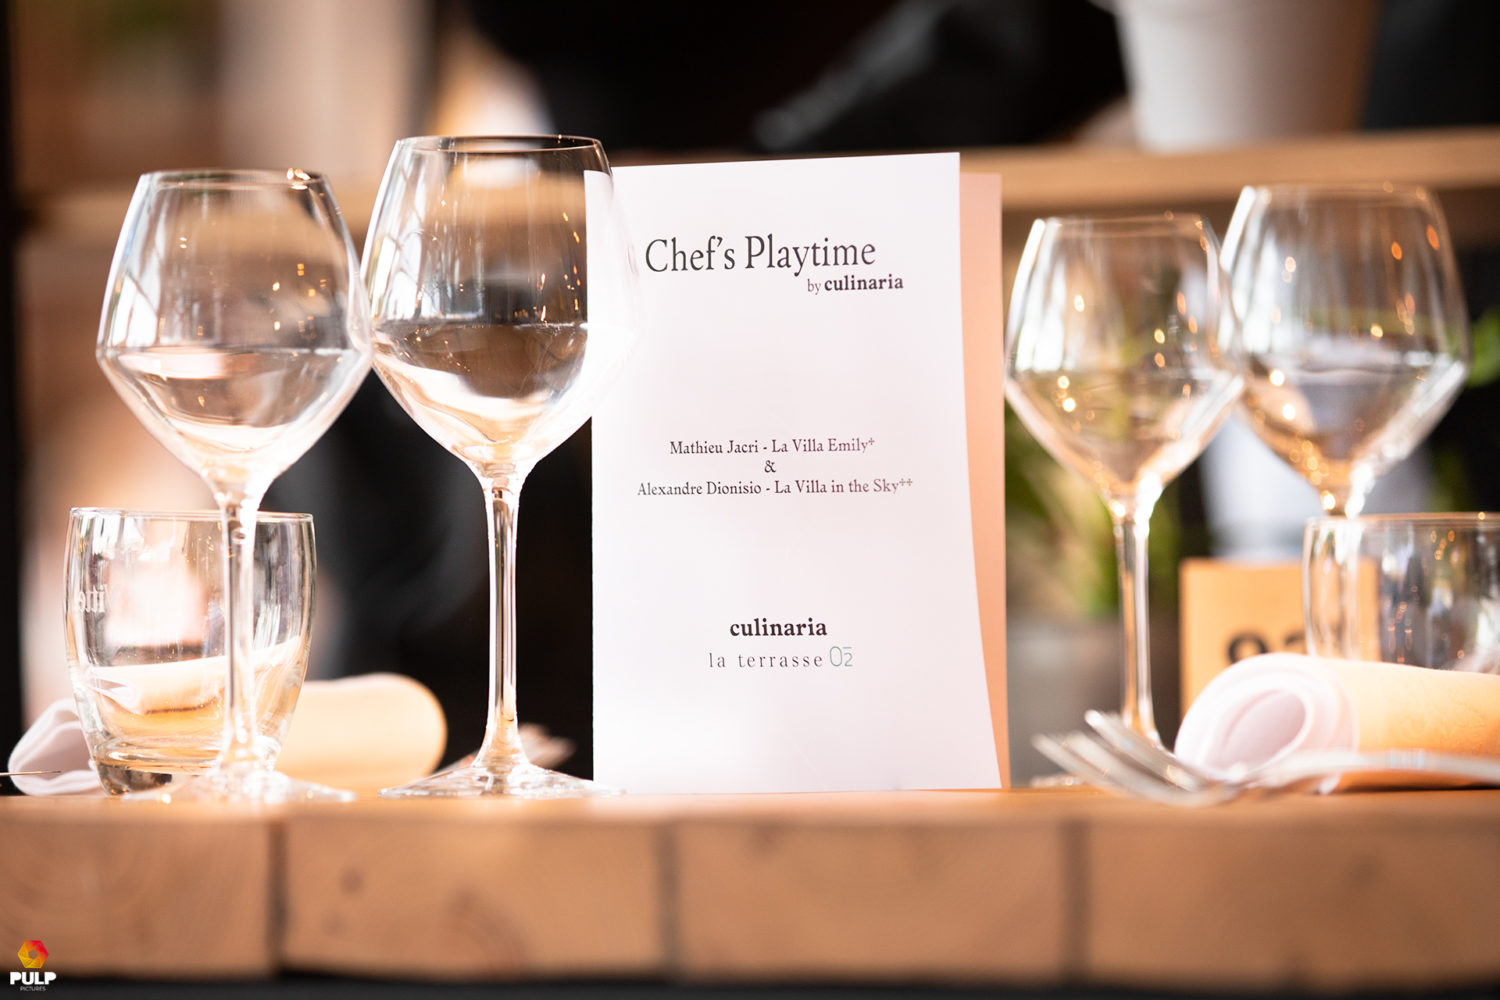 Chefs PLaytime Culinaria